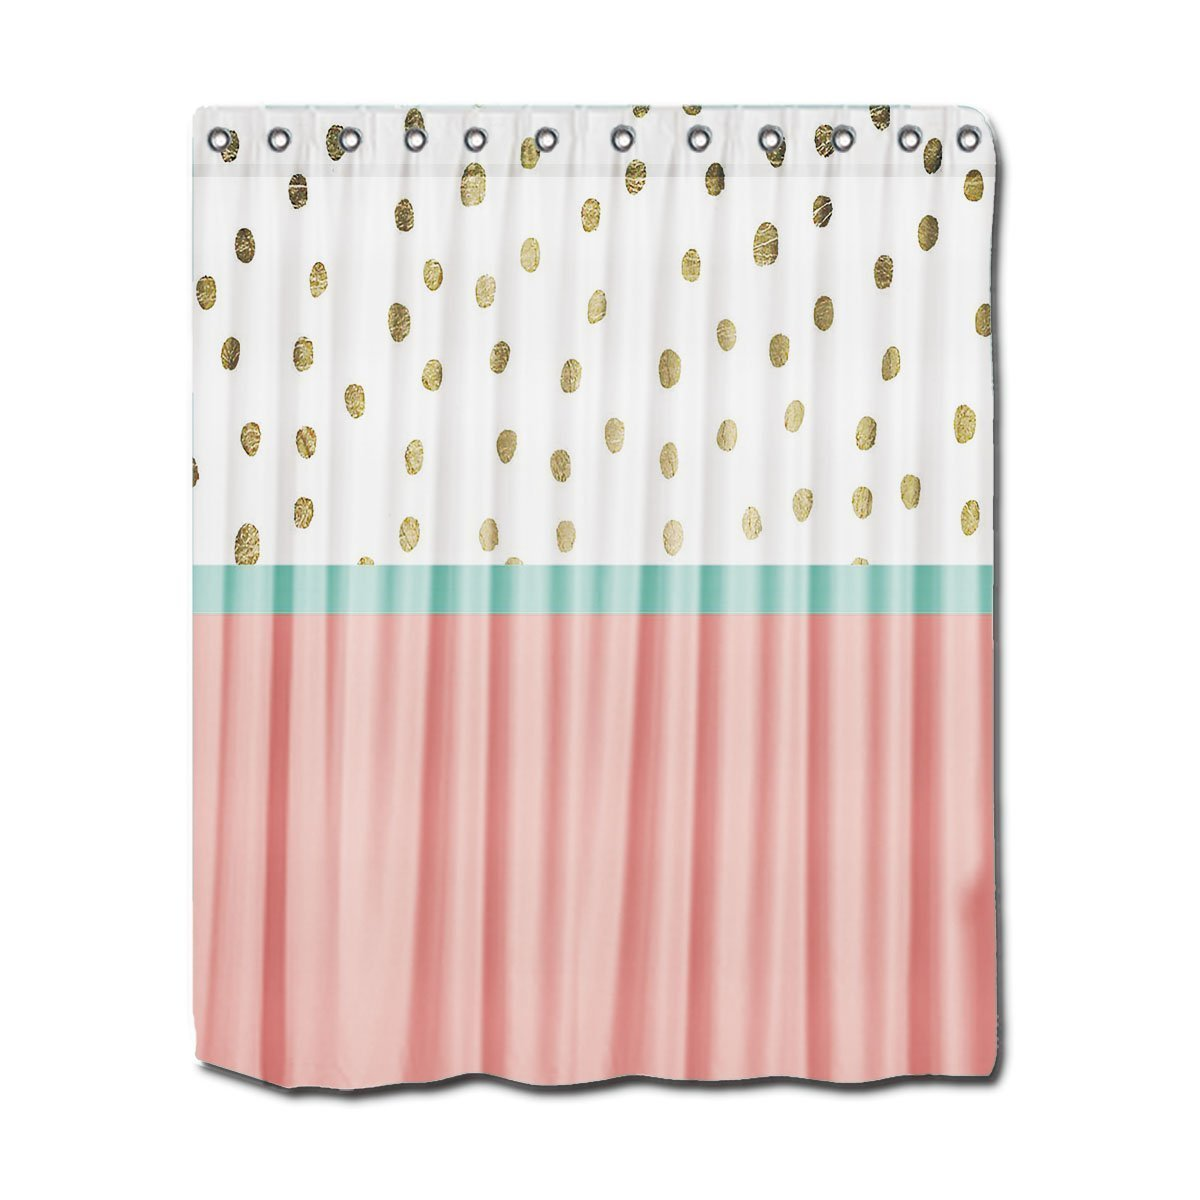 Yyt Shower Curtains Coral Teal Color Block Gold Foil Polka Dots Shower Curtain Stocked Dots Shower Curtain Polka Dot Shower Curtainshower Curtain Aliexpress